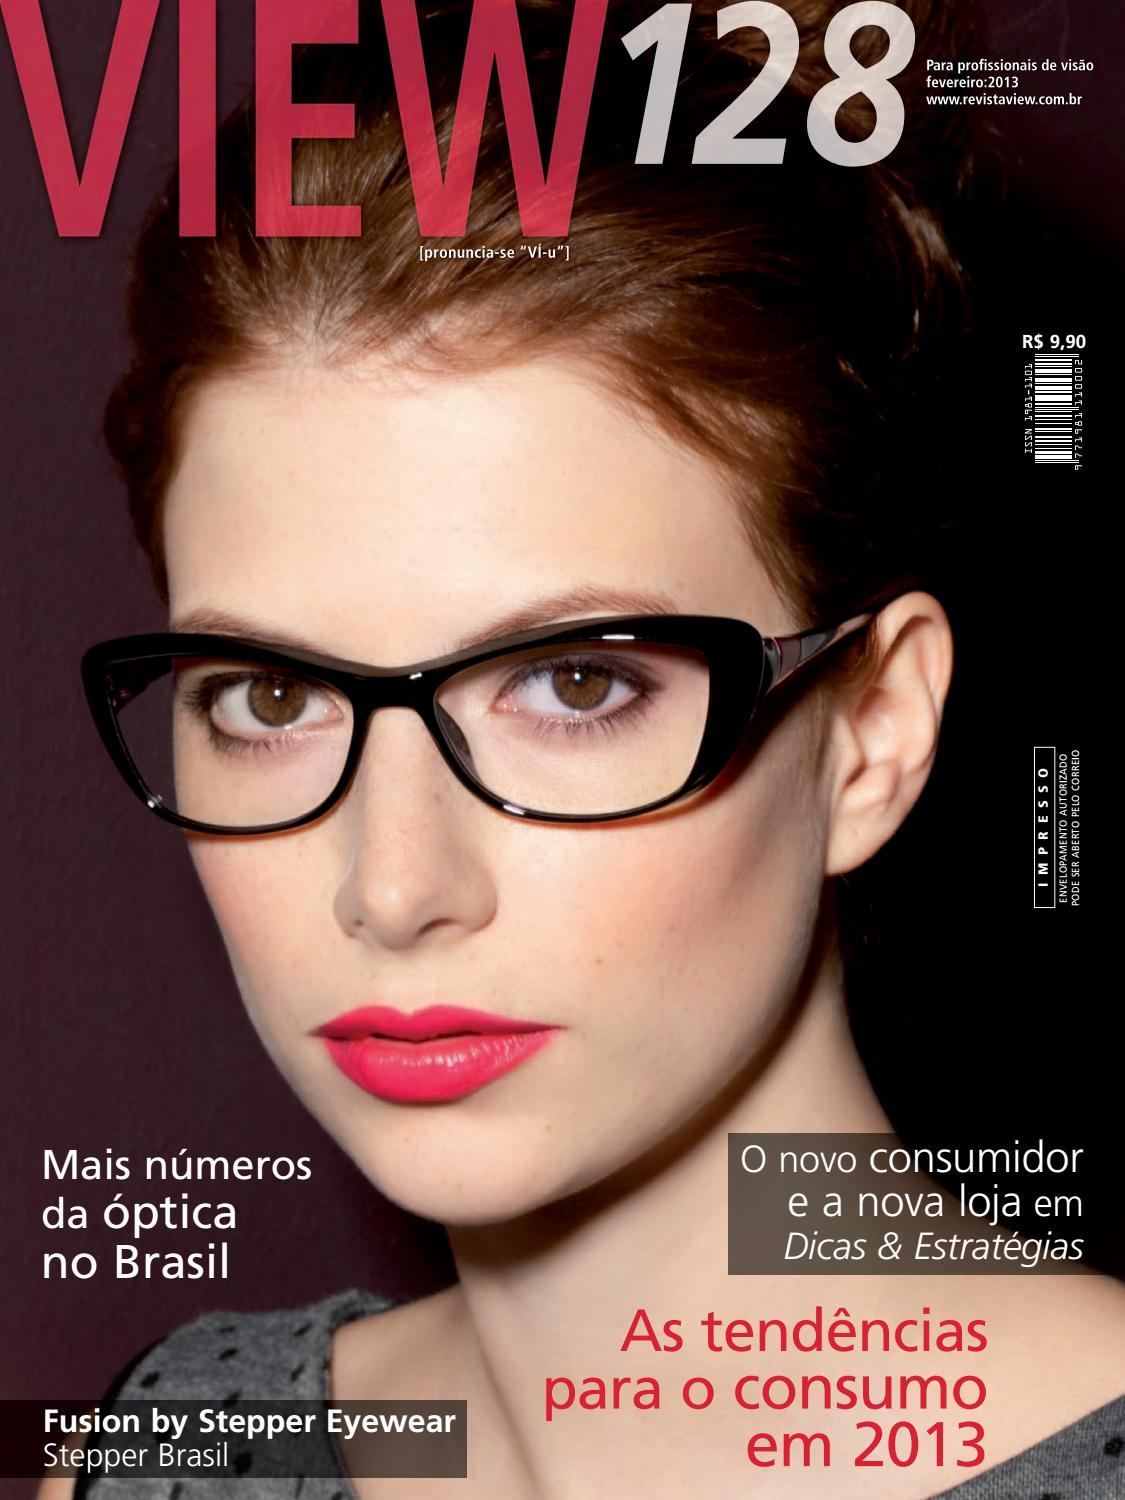 45d59112a VIEW 128 by Revista VIEW - issuu